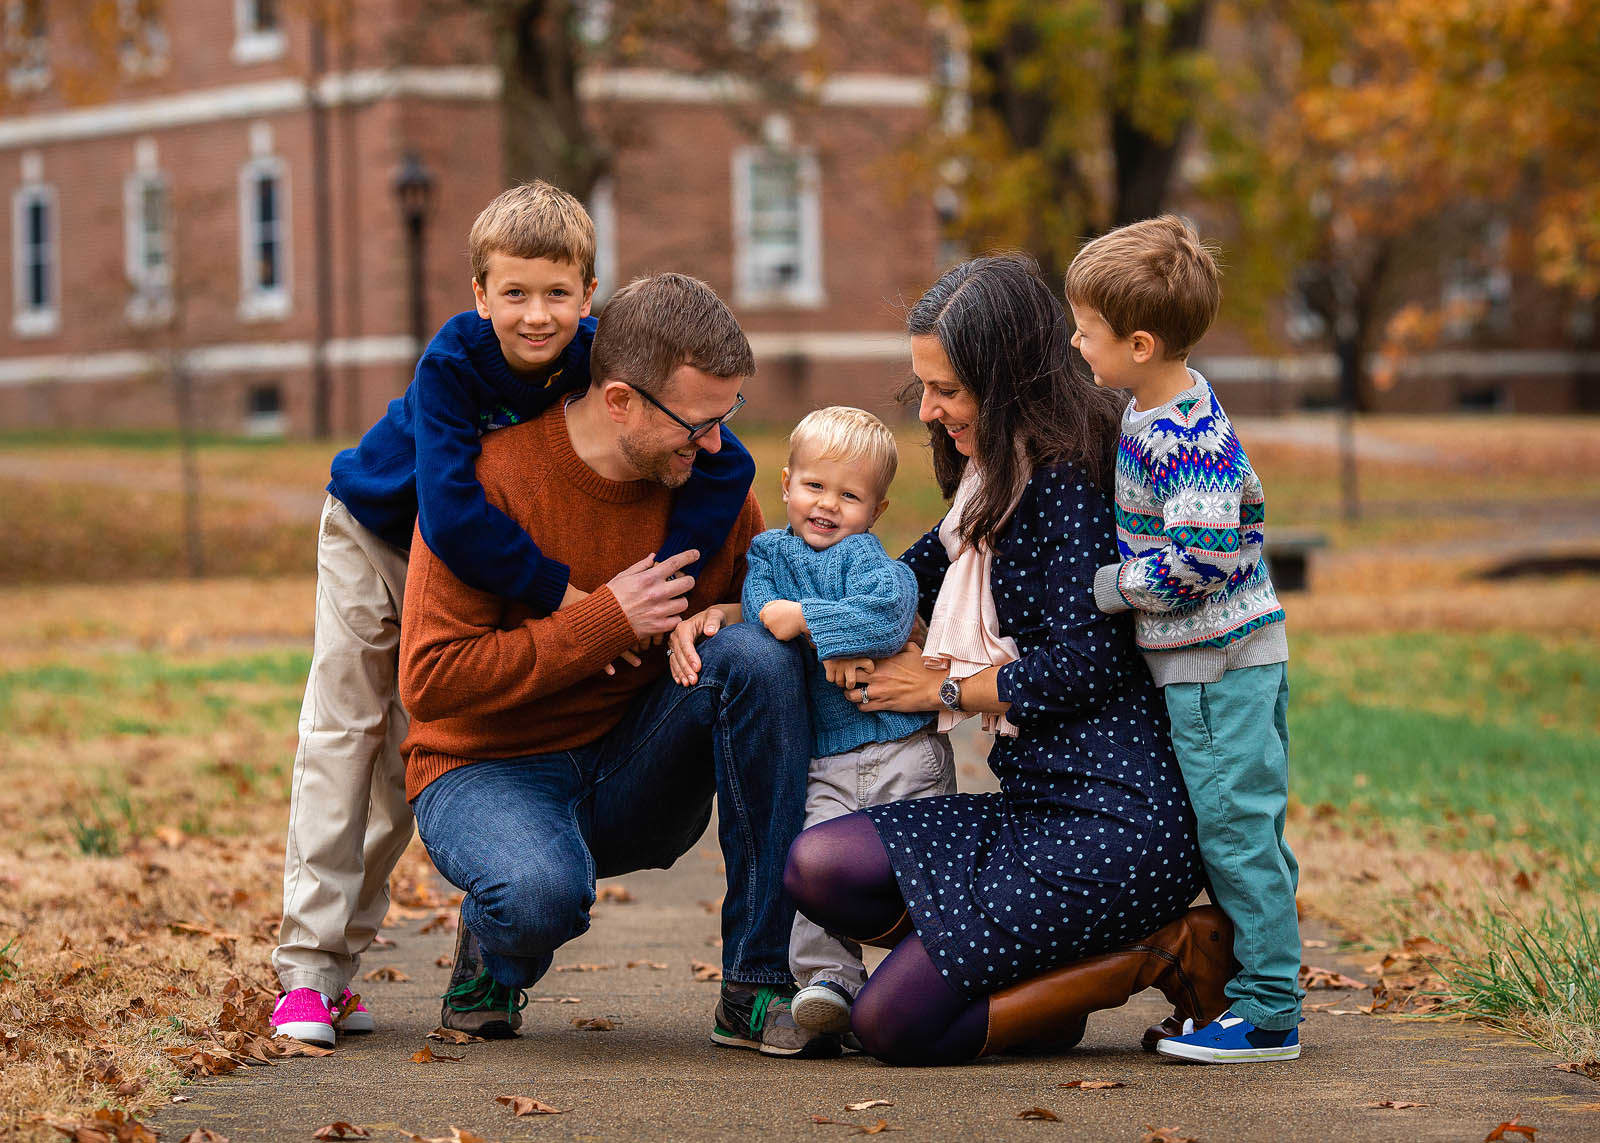 family of 5 photo session in raleigh nc